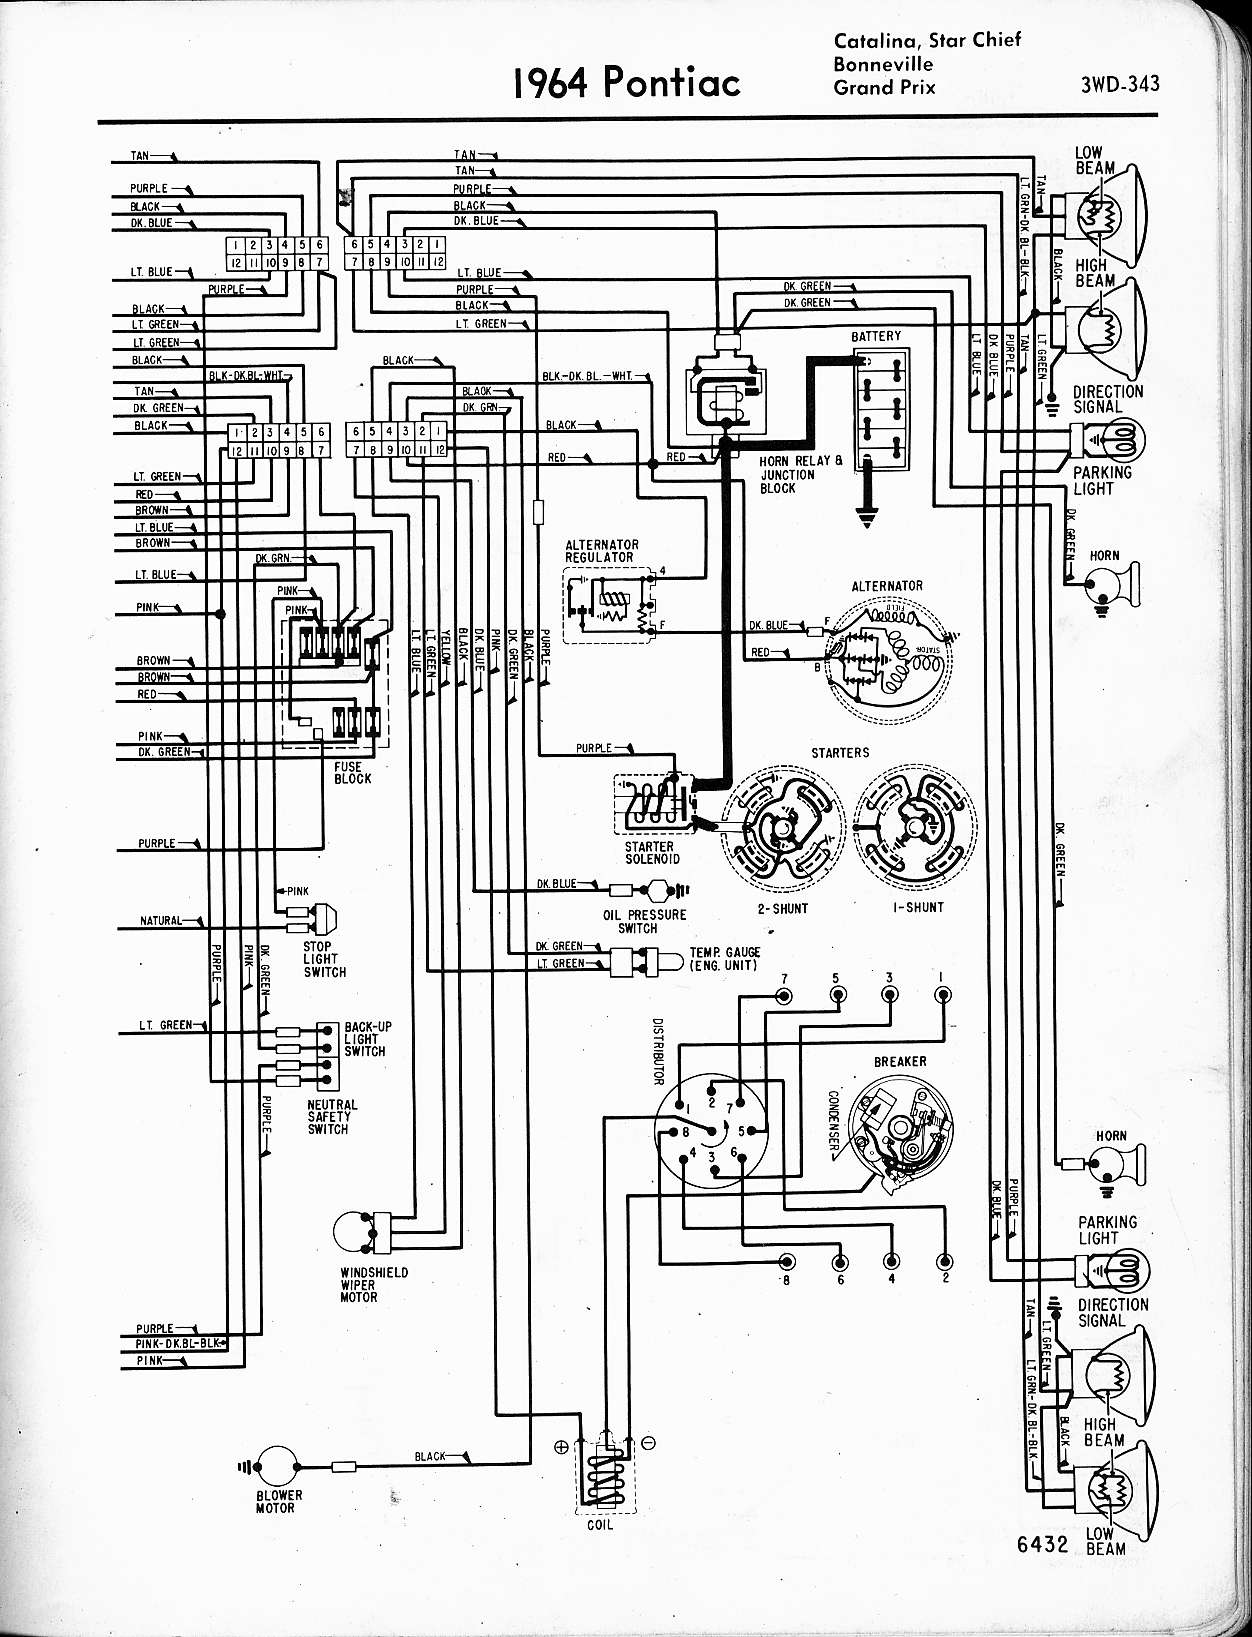 MWire5765 343 68 bonneville wiring diagram 100 images 1965 pontiac wiring 1968 triumph bonneville wiring harness at edmiracle.co